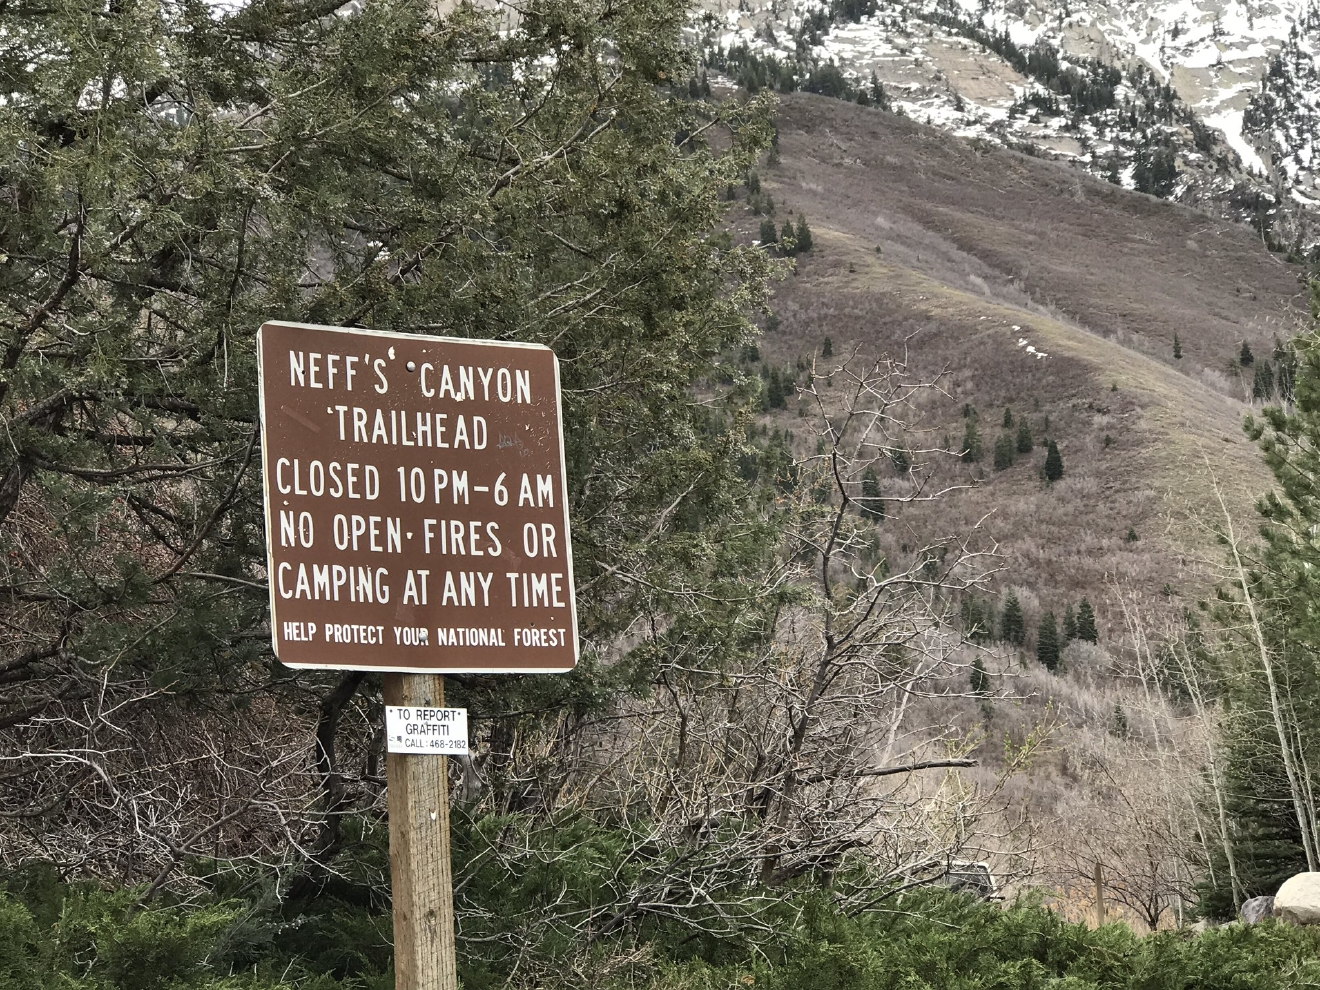 Human remains found in Neffs Canyon. (Photo: Jeremy Harris / KUTV)